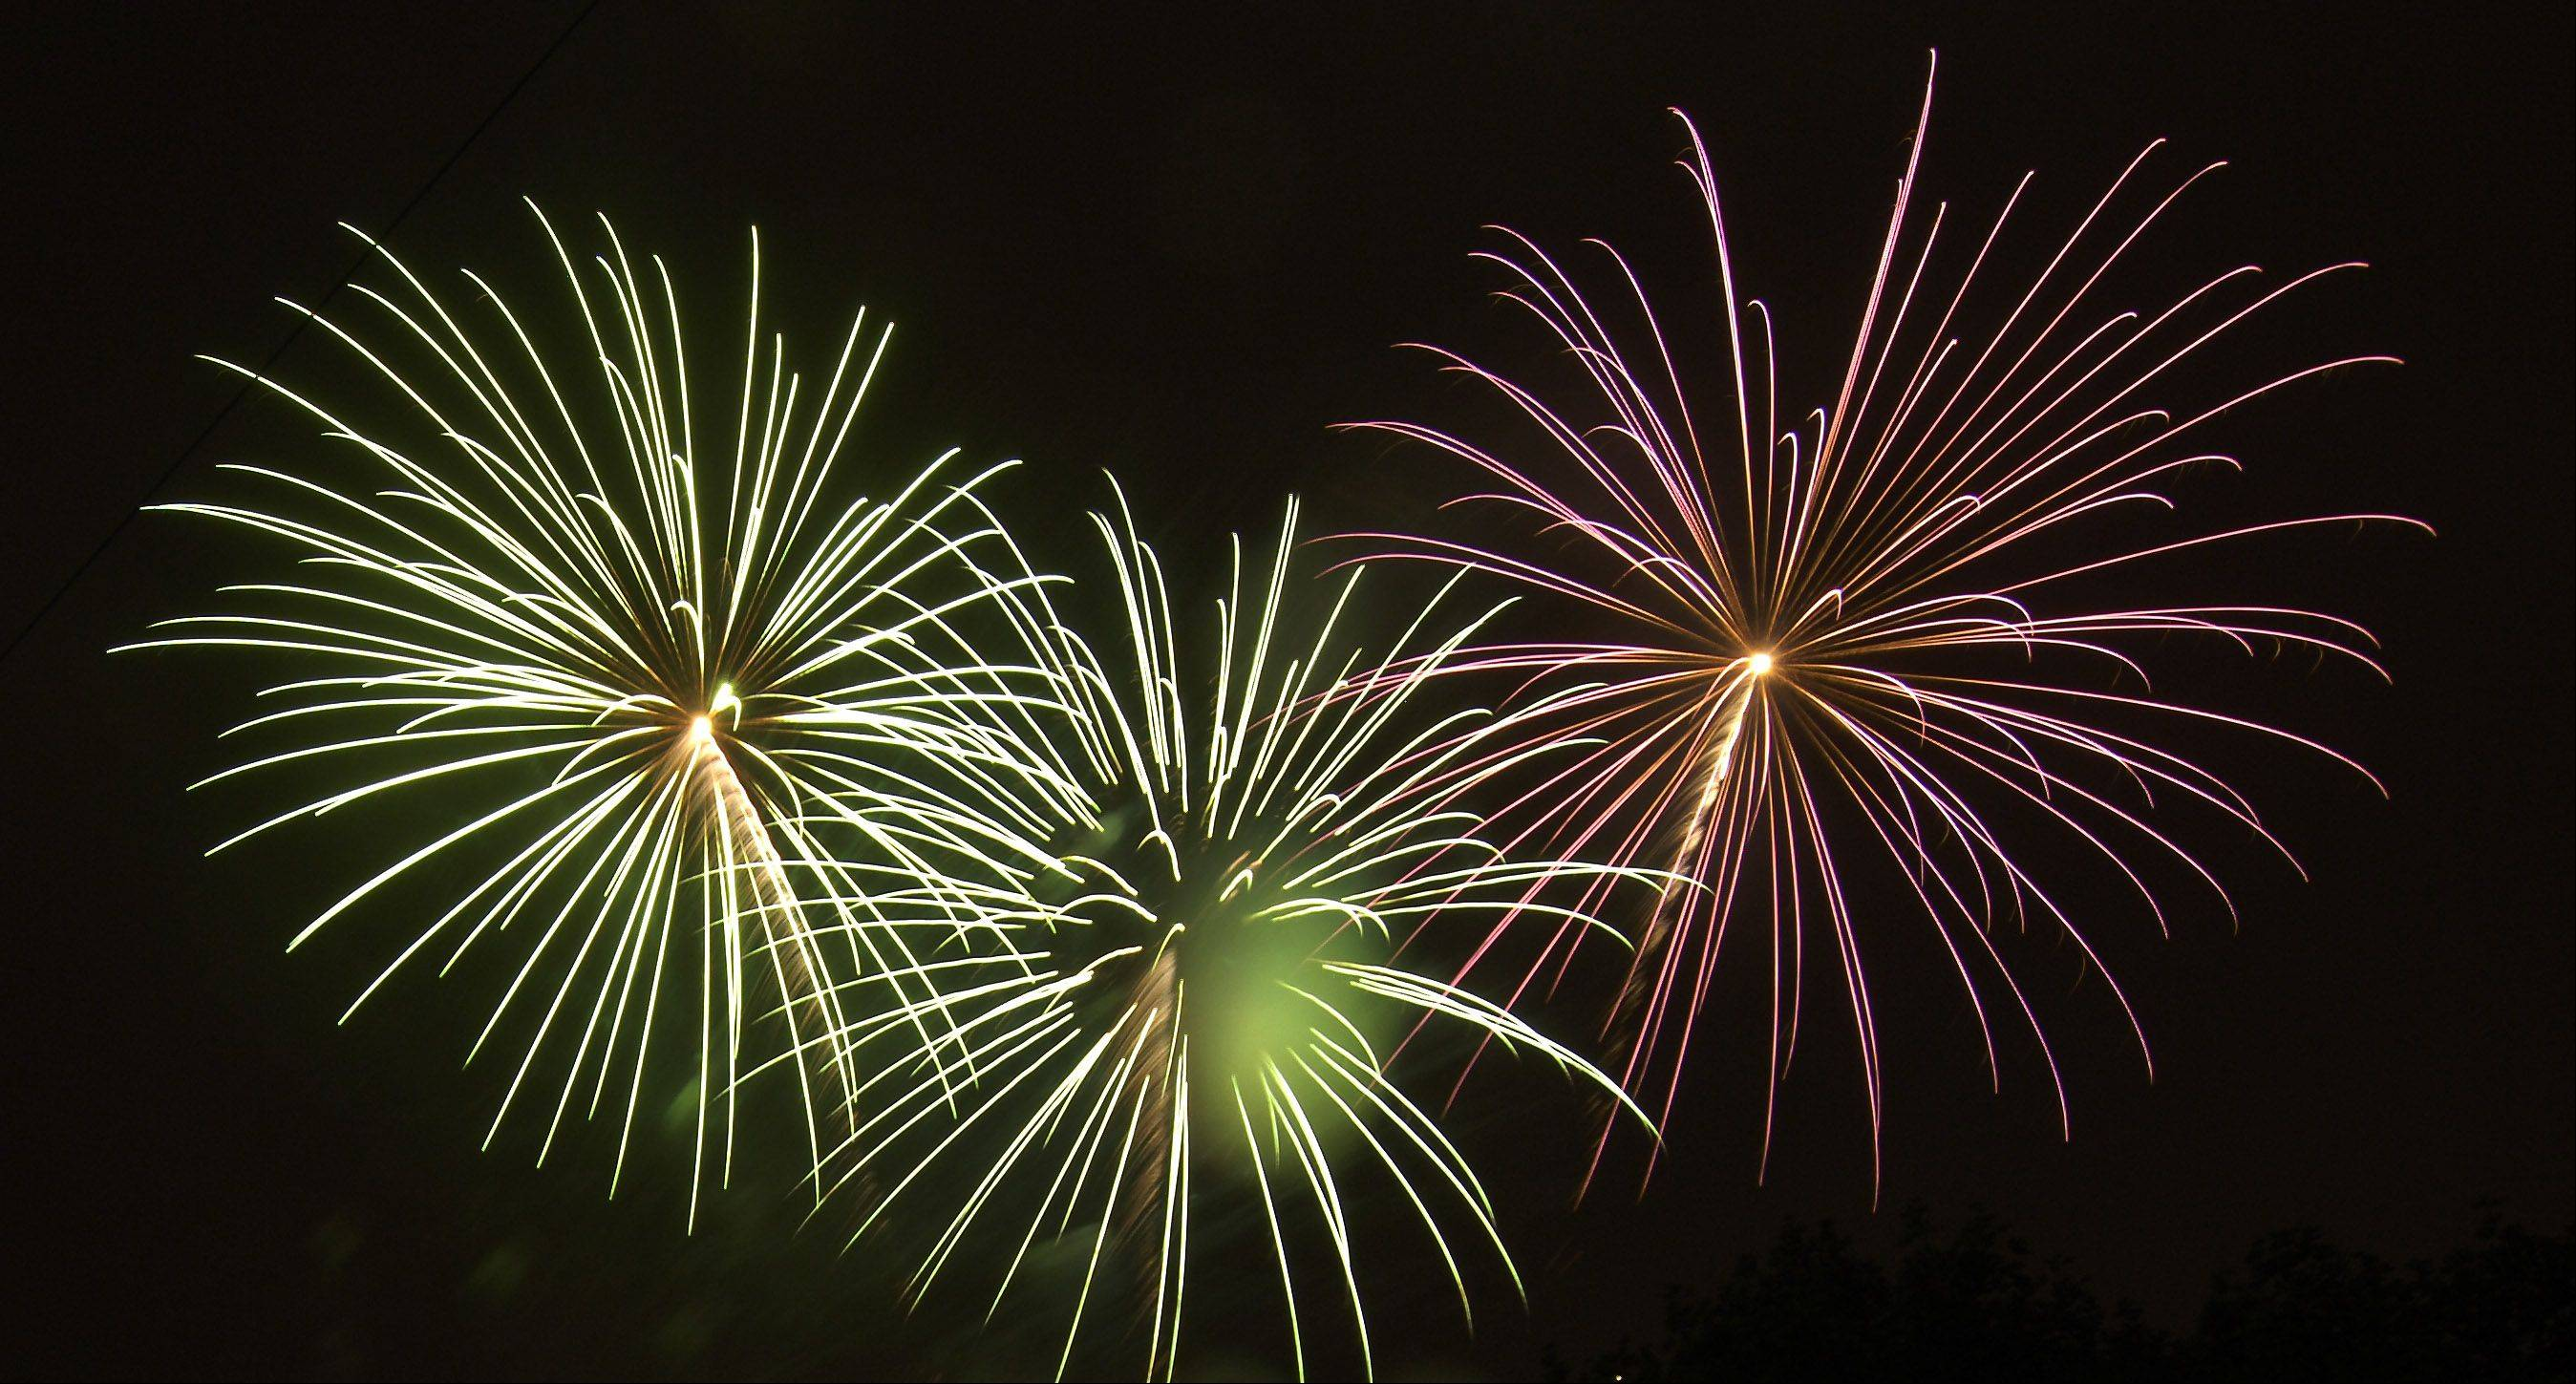 The Illinois Lottery plans to sponsor Fourth of July fireworks displays in five Illinois cities this year including Batavia.